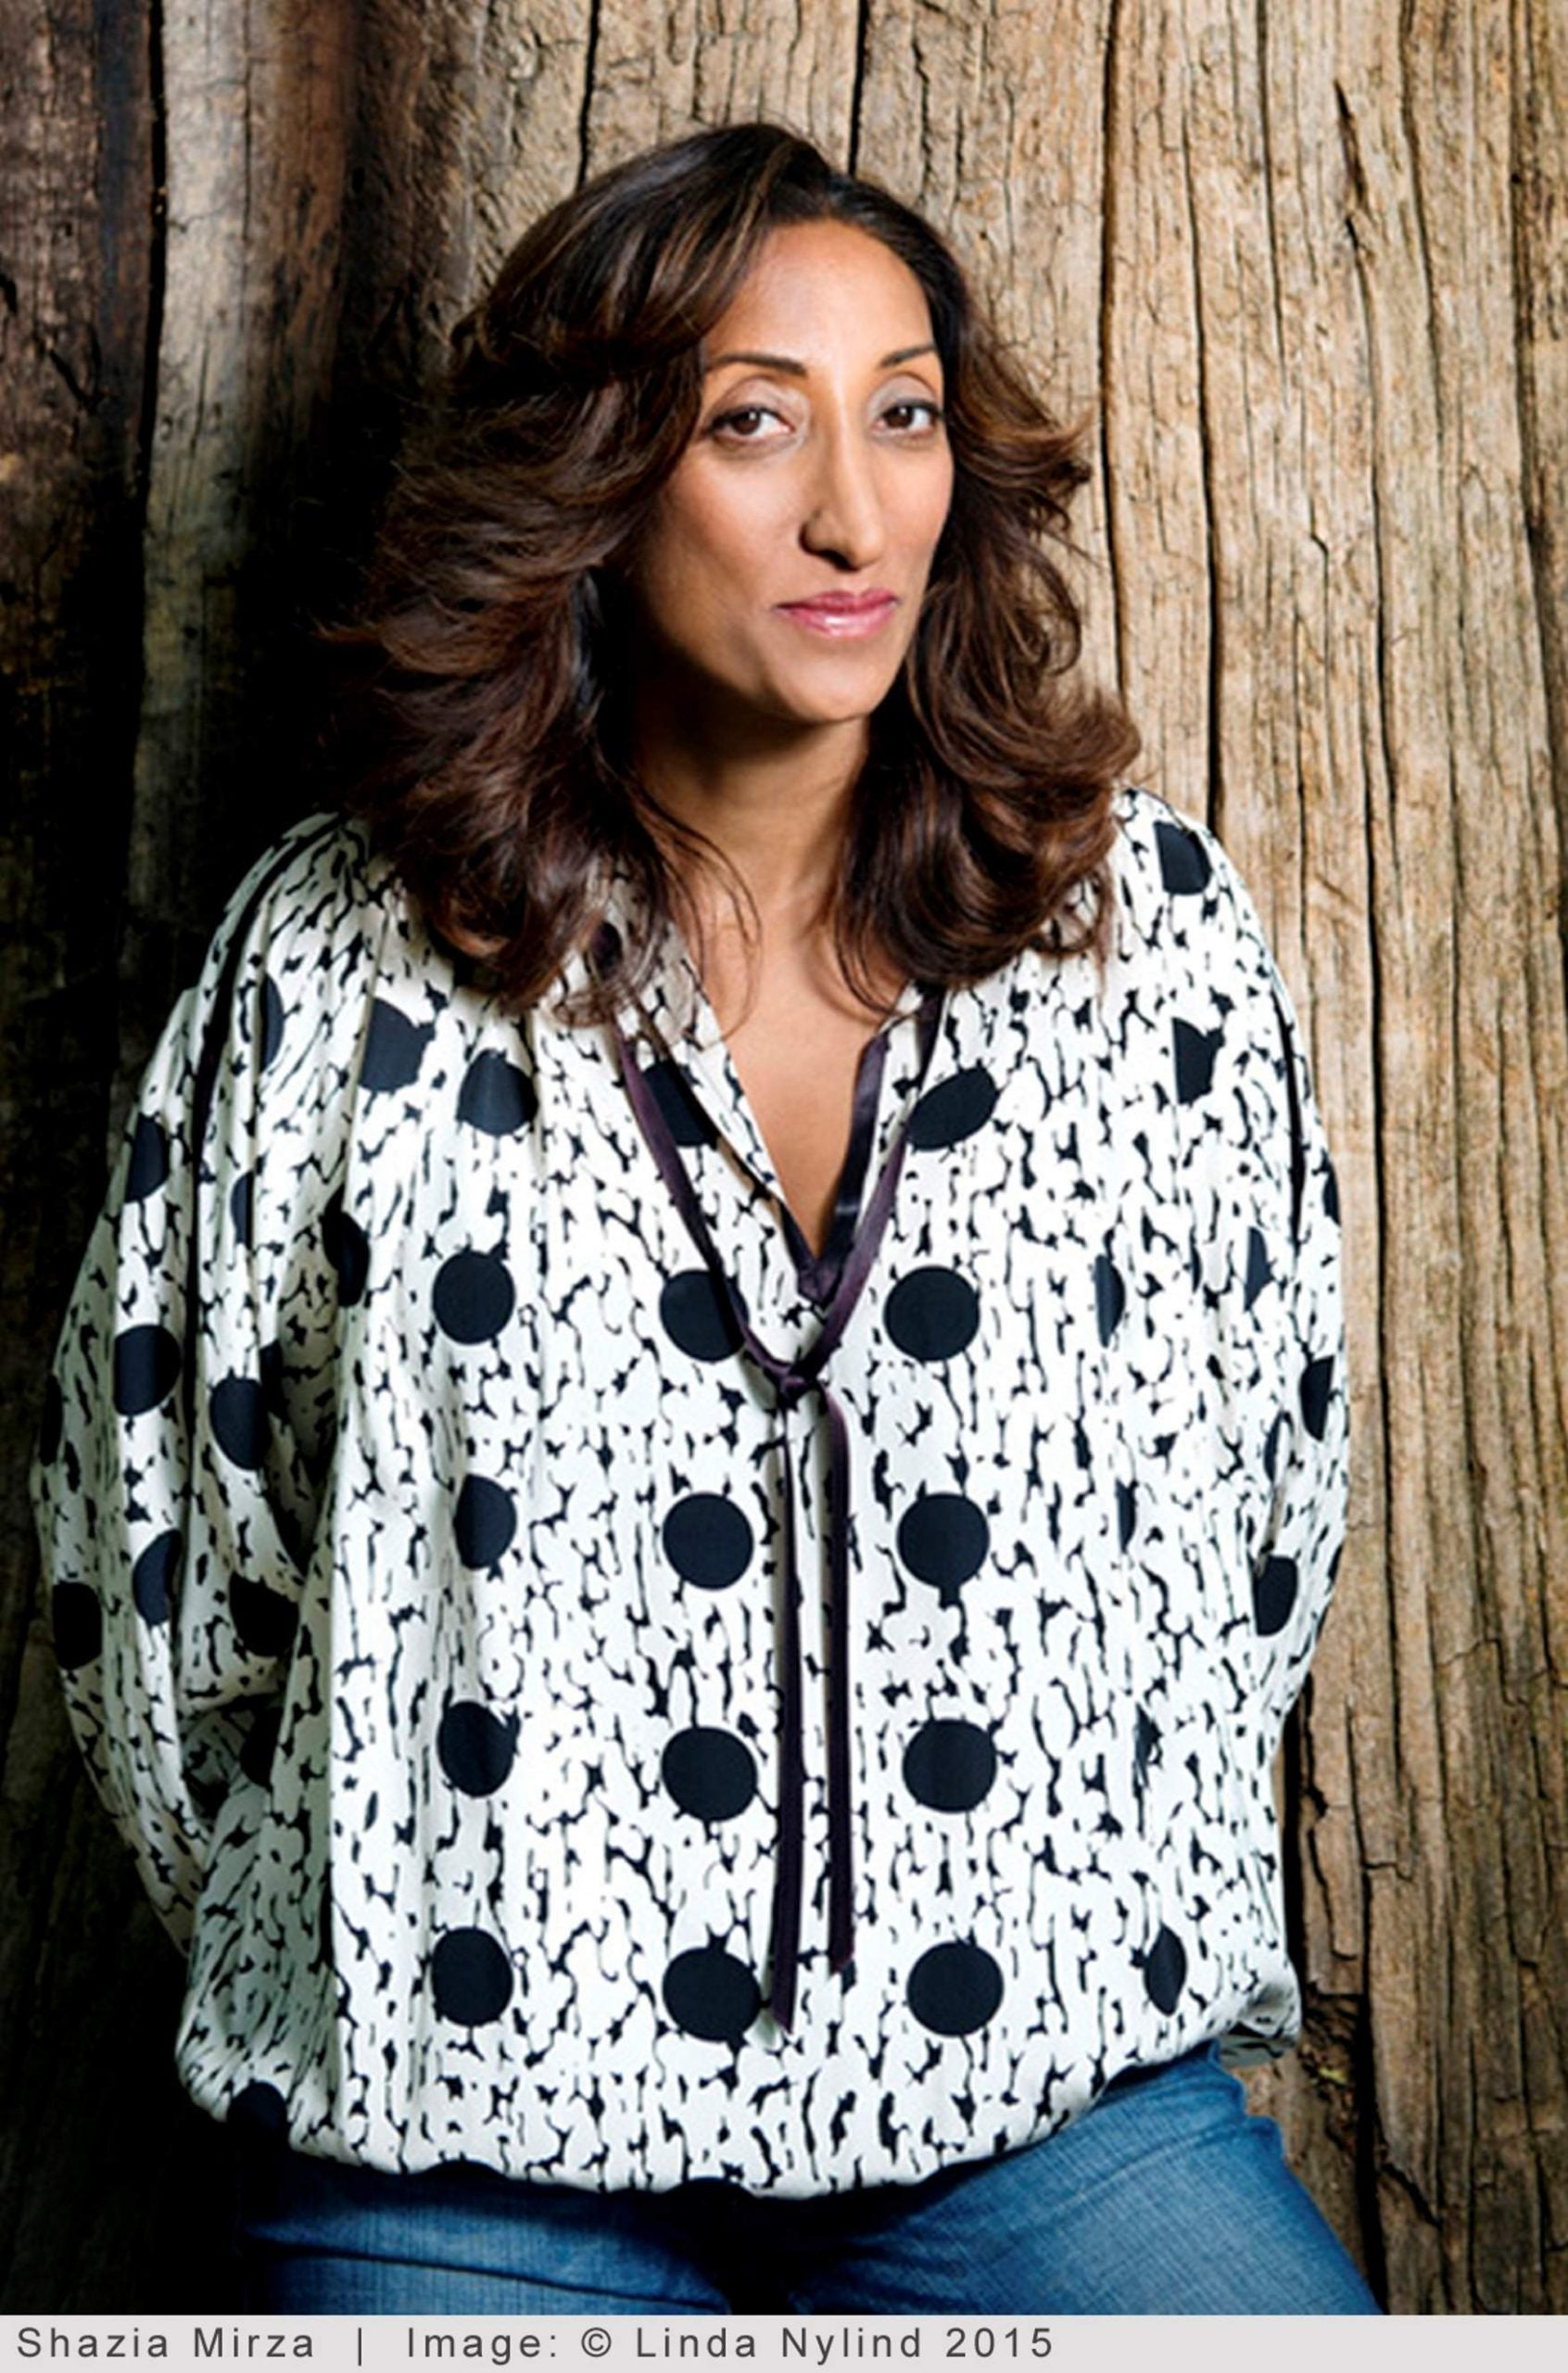 """Shazia Mirza on the culture of hate: """"Once we blamed Yoko Ono. Now we blame refugees"""""""